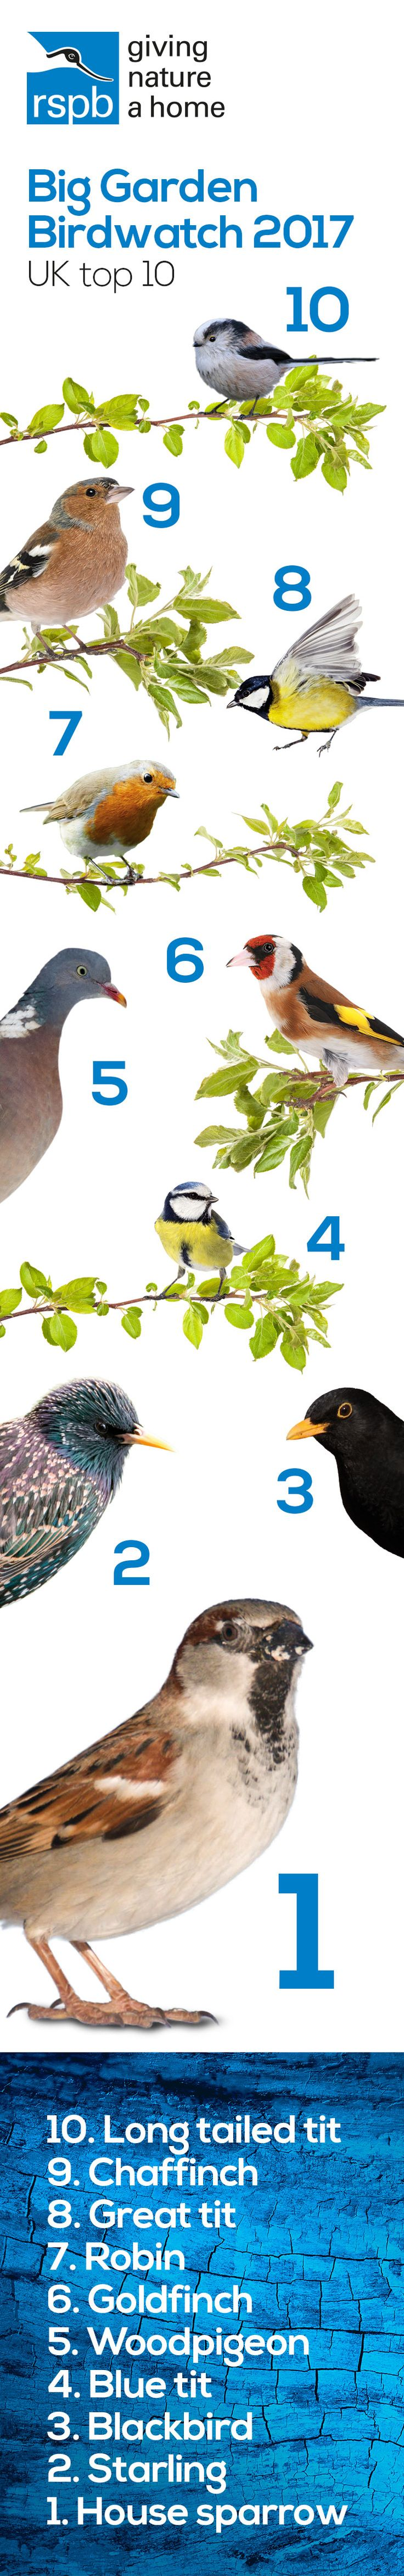 #BigGardenBirdWatch 2017 results are here: Sparrows are top of the tree, Robins are doing well but the blue tit, chaffinch and starling are all struggling. Please keep #GivingNatureAHome in your garden or community